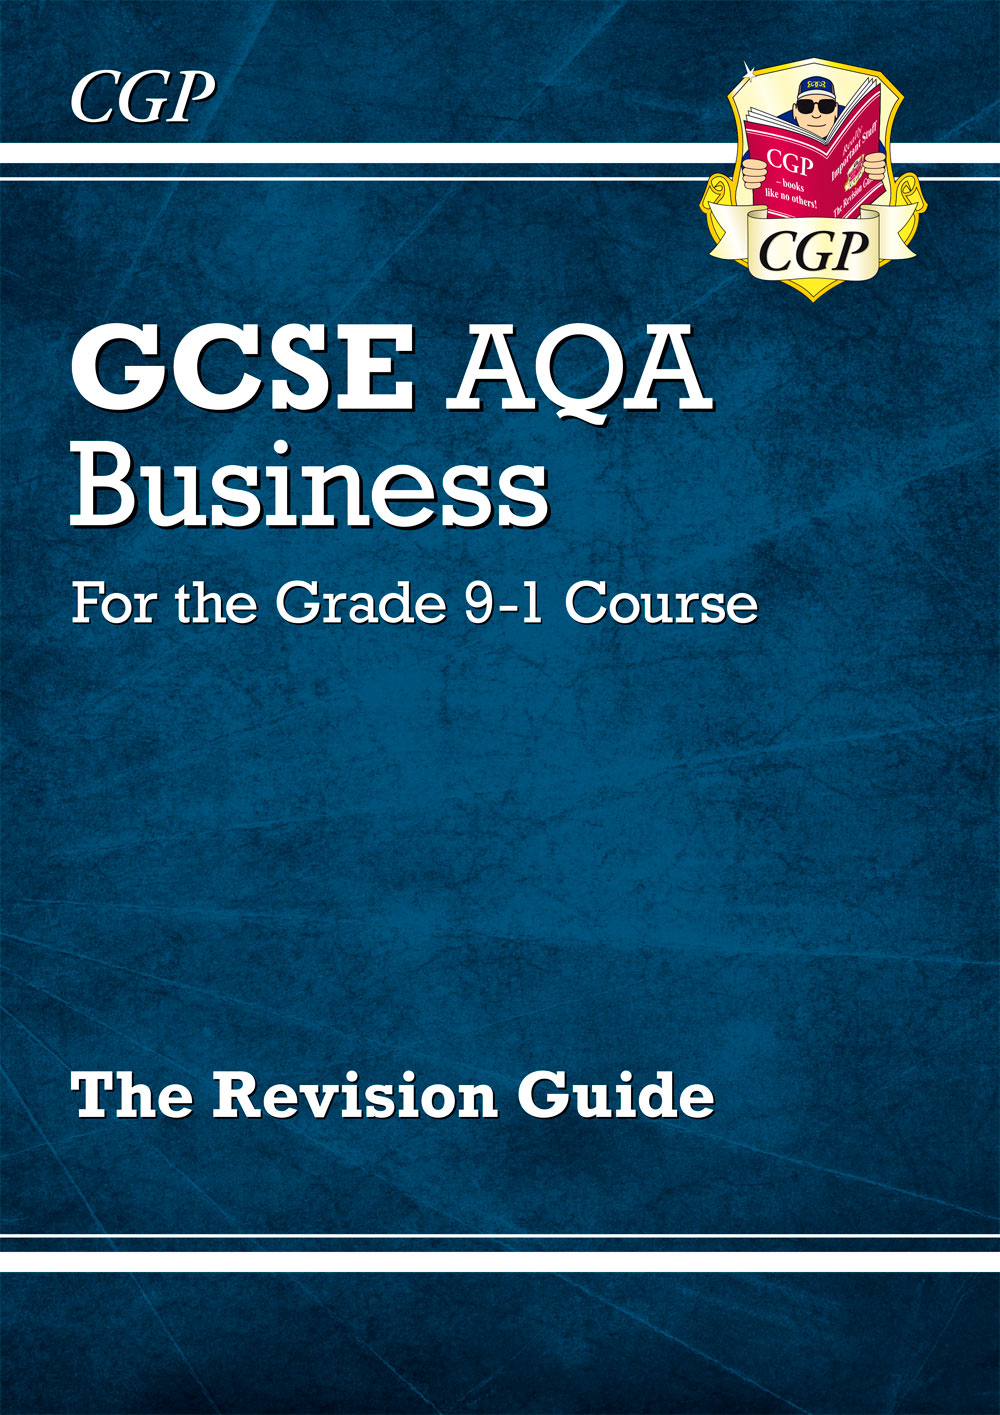 BUAR43 - New GCSE Business AQA Revision Guide - for the Grade 9-1 Course